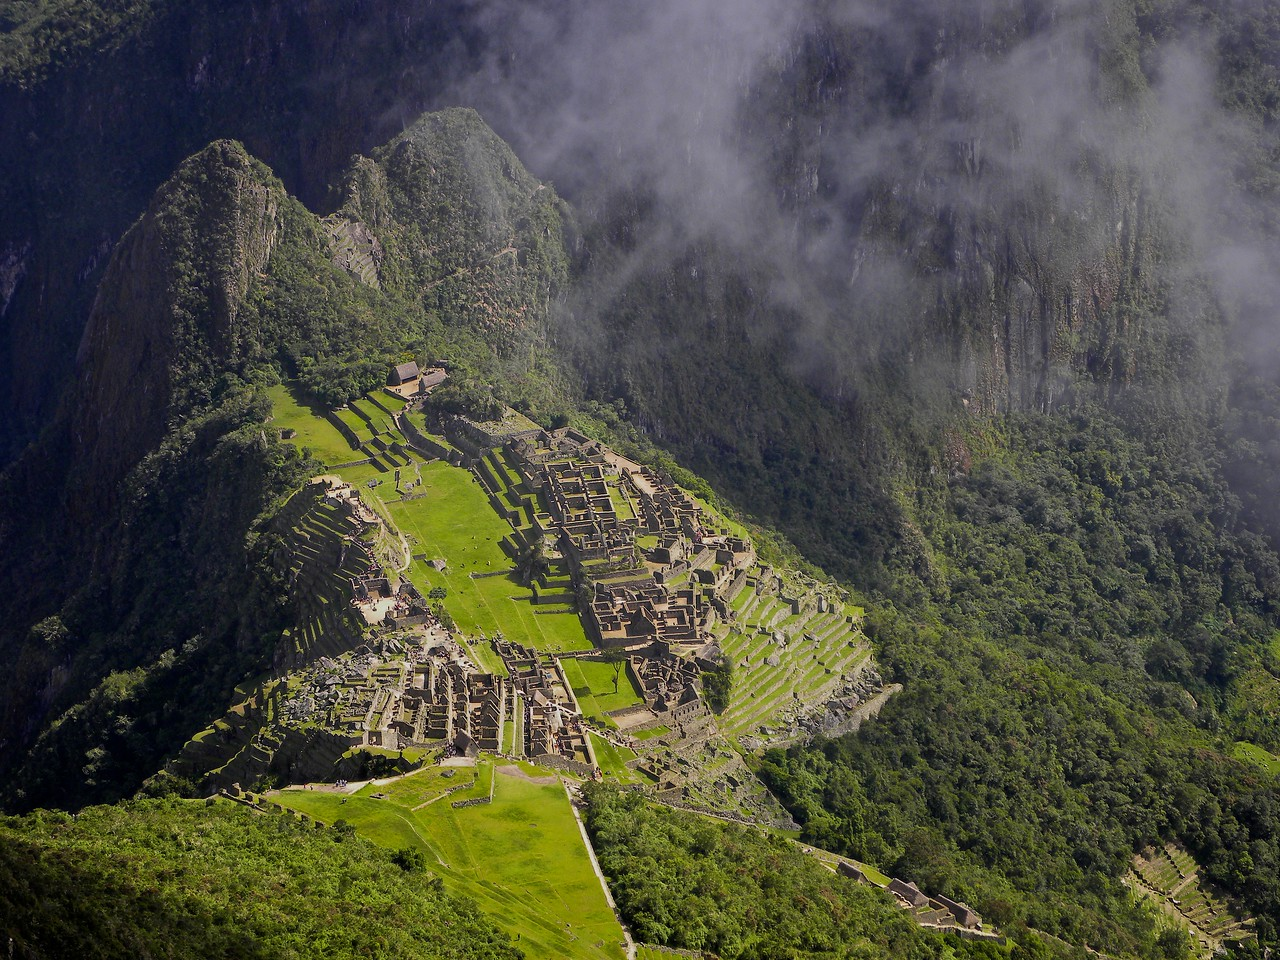 The Machu Picchu ruin is located at an elevation of about 7000 feet. We climbed from there to the top of Machu Picchu the mountain and could look down on the archaeologic site and Huyana Picchu. The top was about 11000 feet.